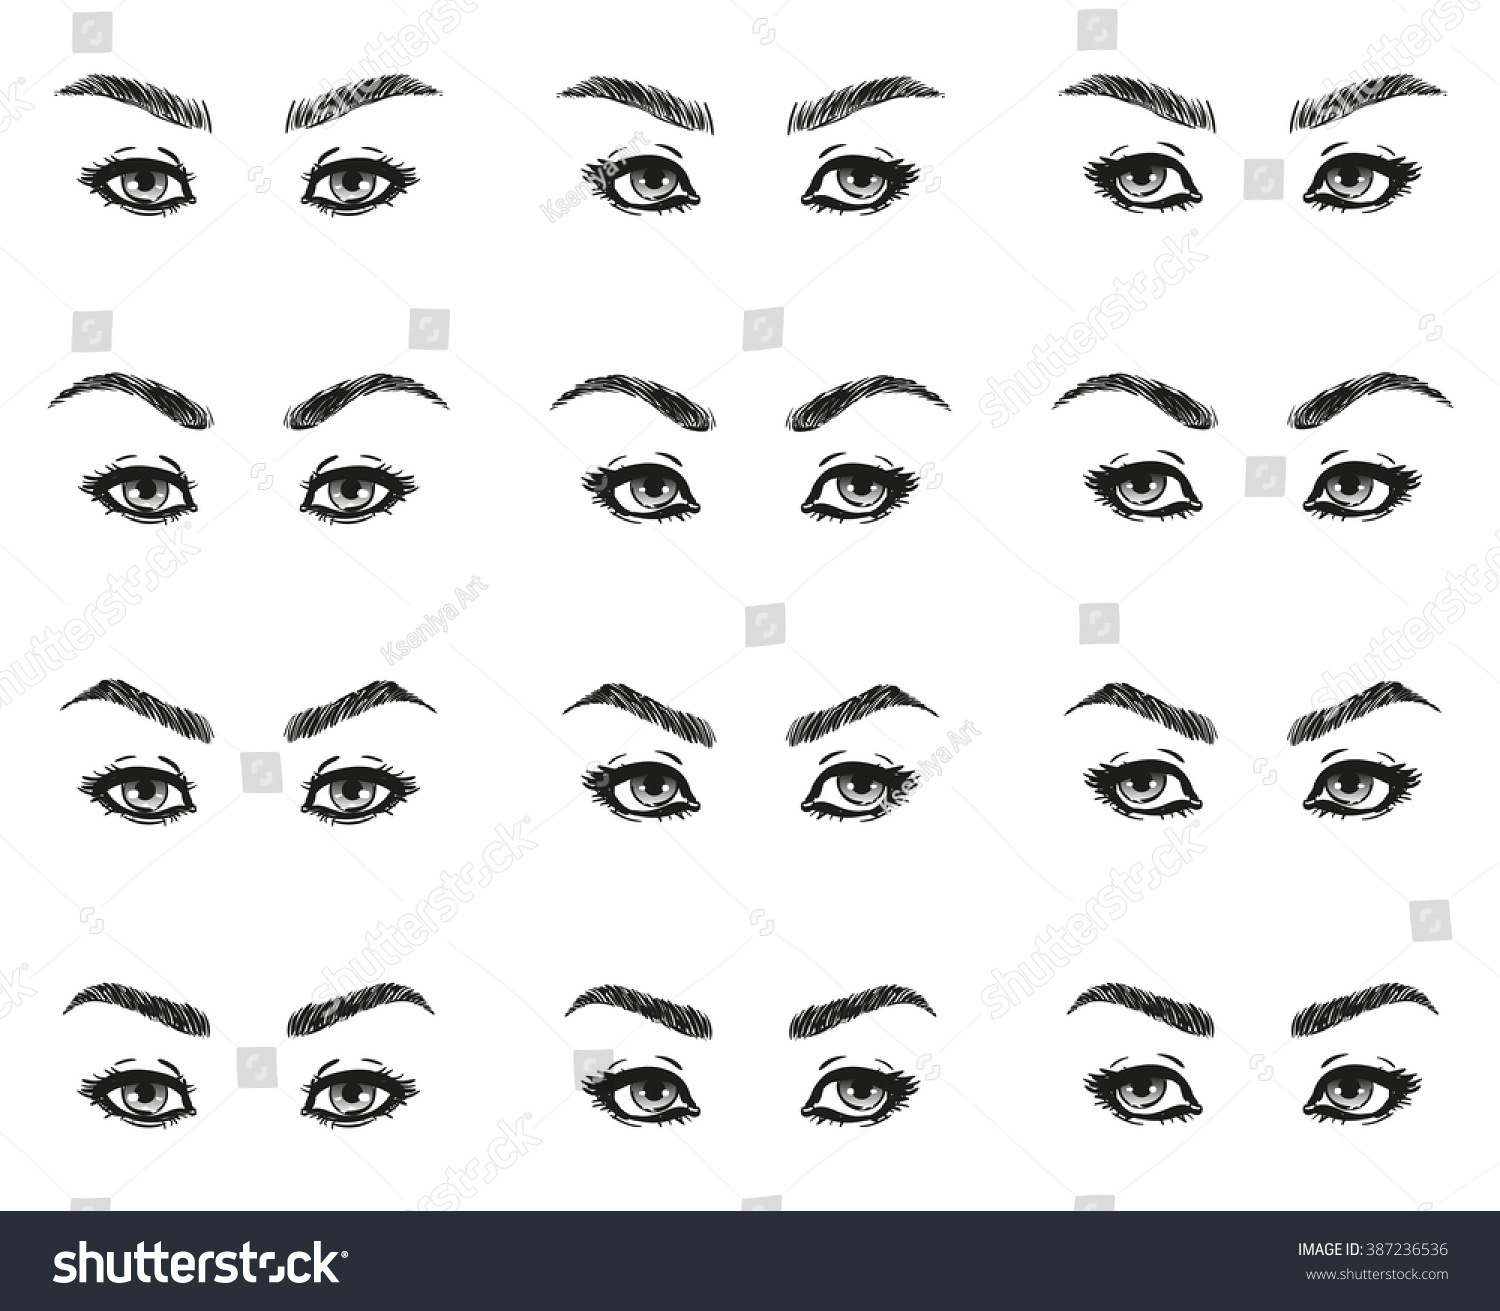 Icons set female eyes look long stock illustration 387236536 icons set female eyes look with long eyelashes and eyebrows different shapes look ahead to the ccuart Gallery